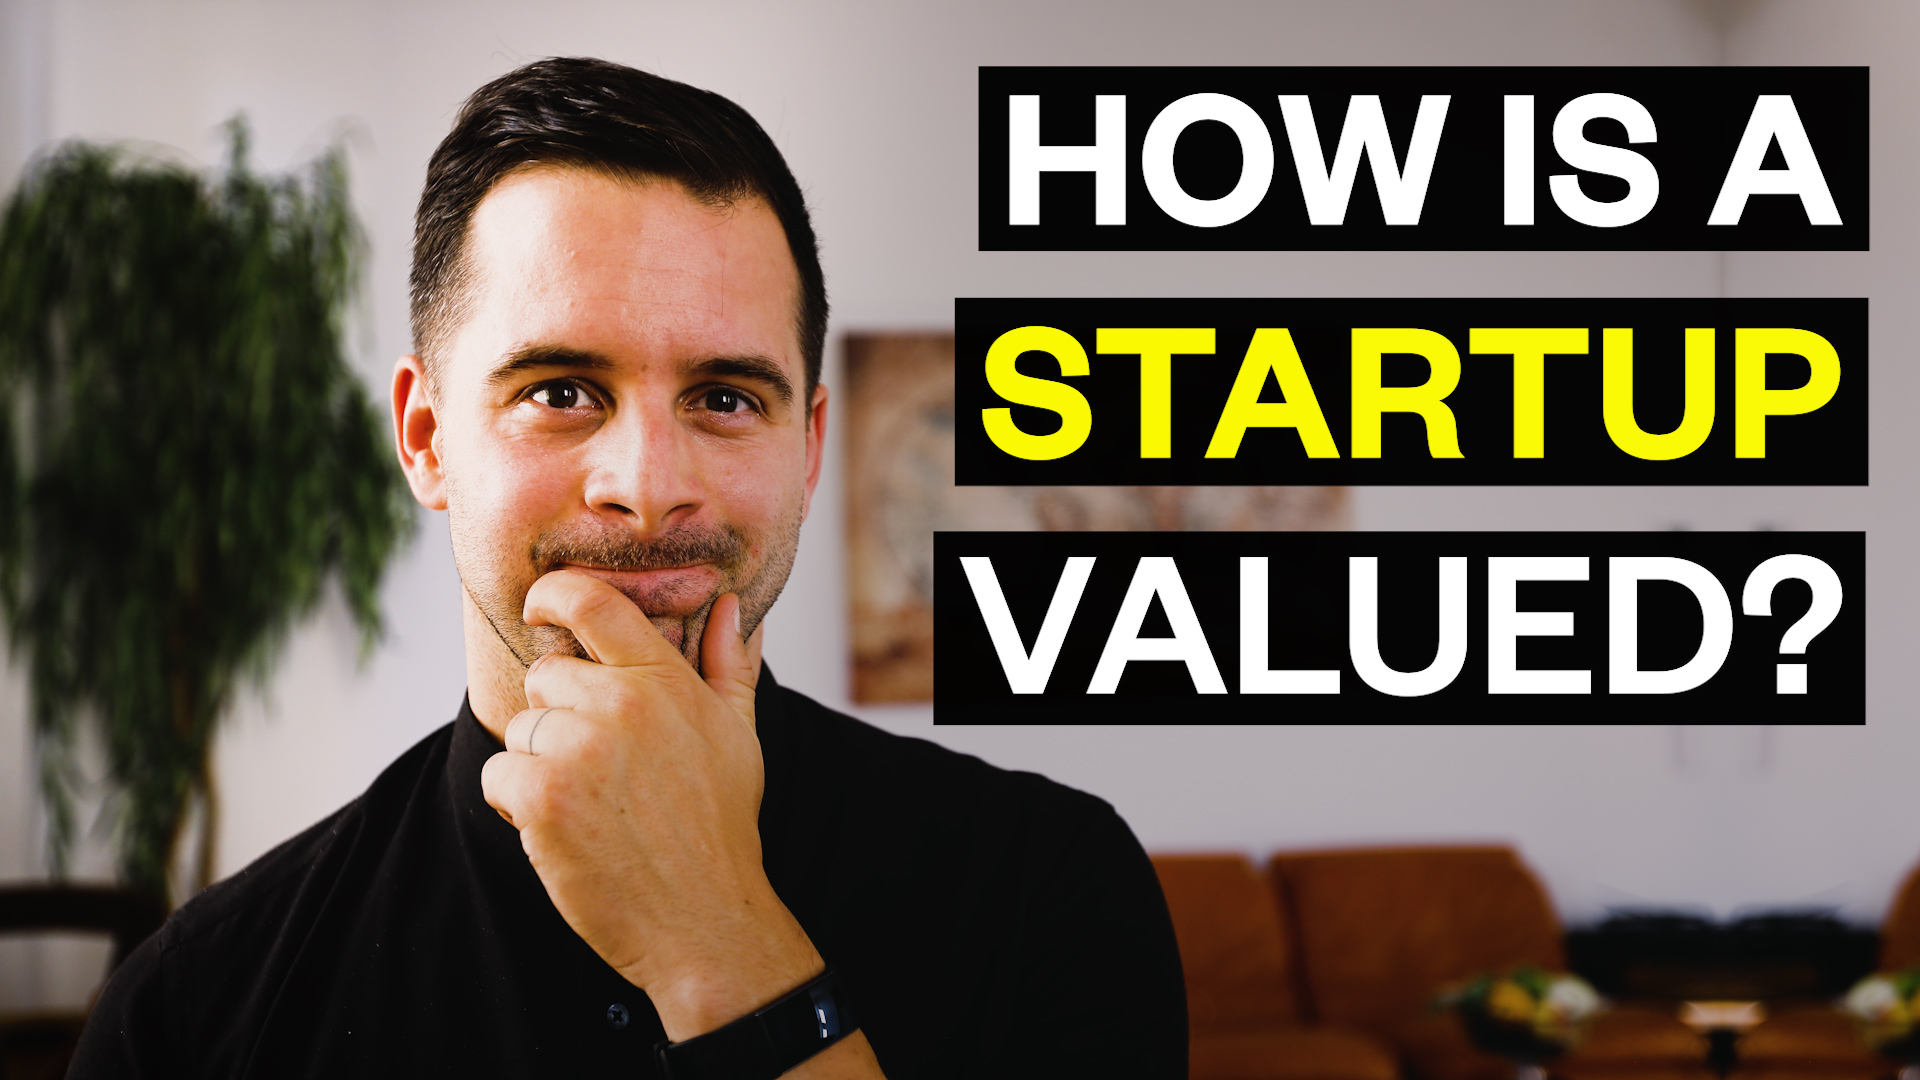 How is a startup valued? An insight into an investors mind.